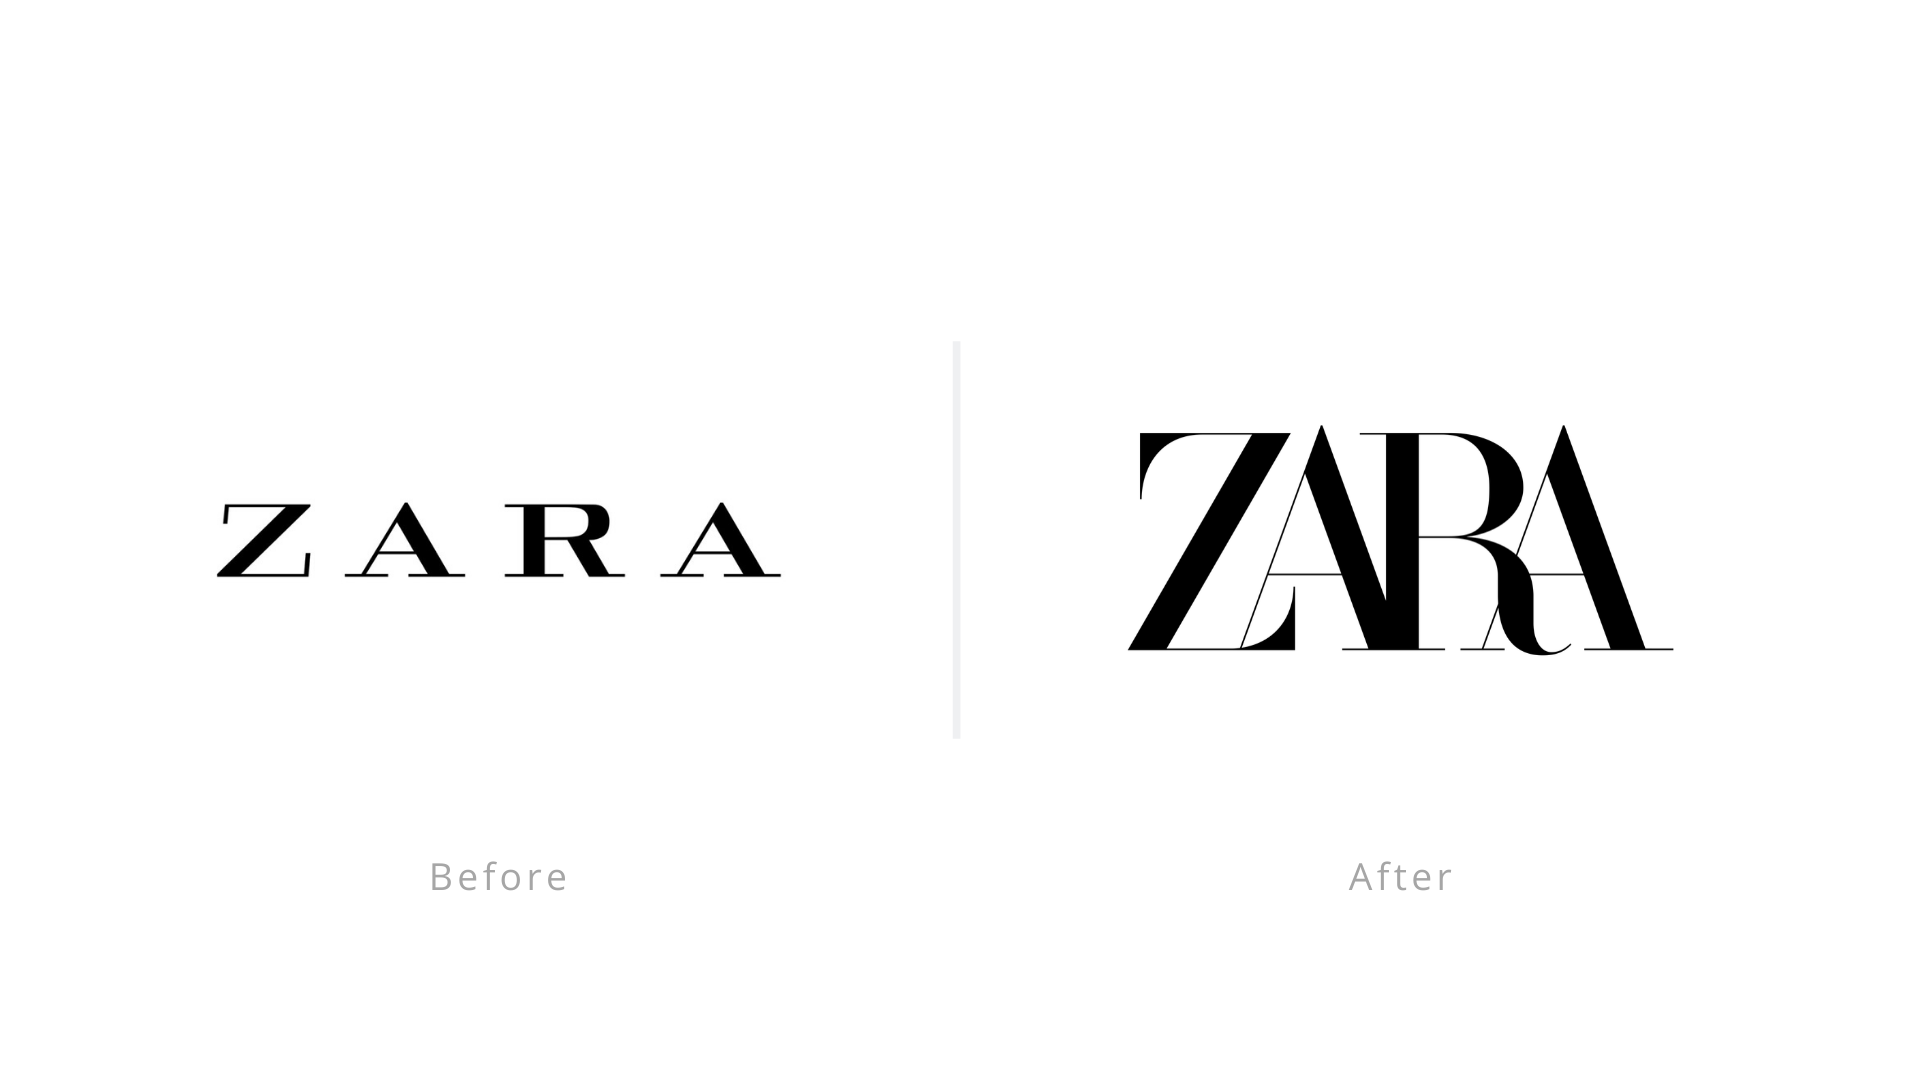 Zara logo before and after